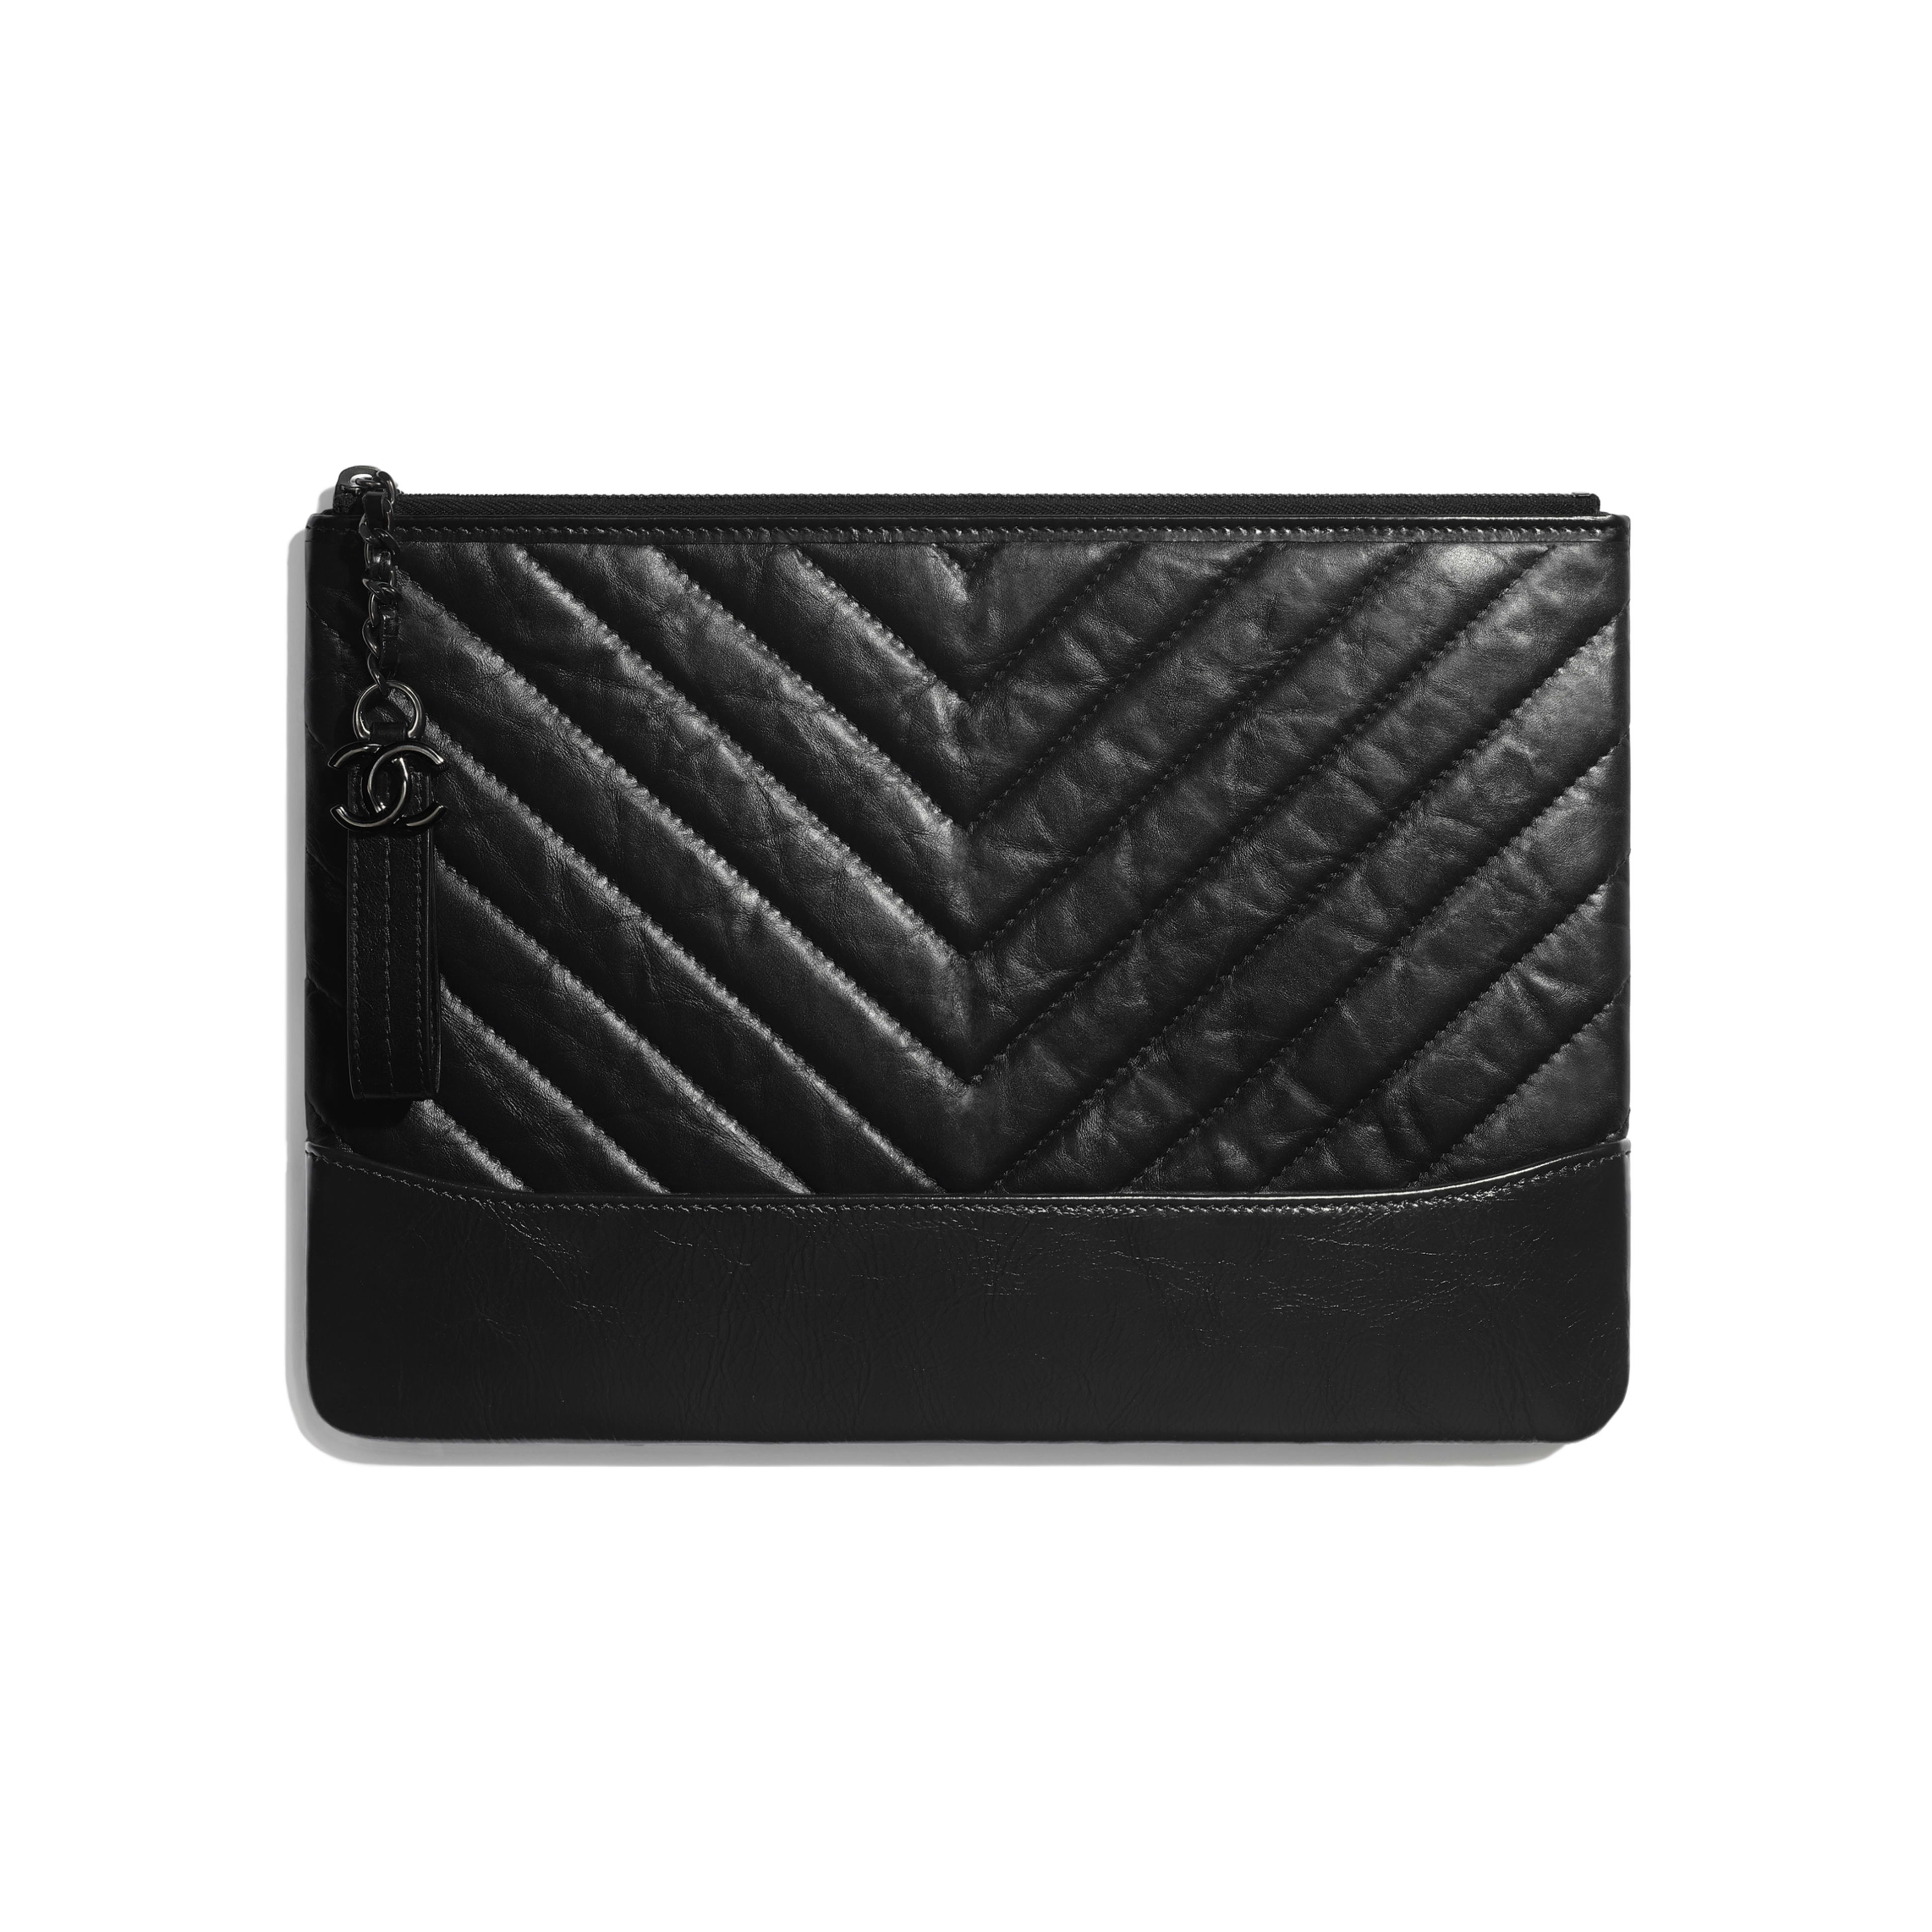 Pouch - Black - Aged Calfskin, Smooth Calfskin & Black Metal - Default view - see full sized version